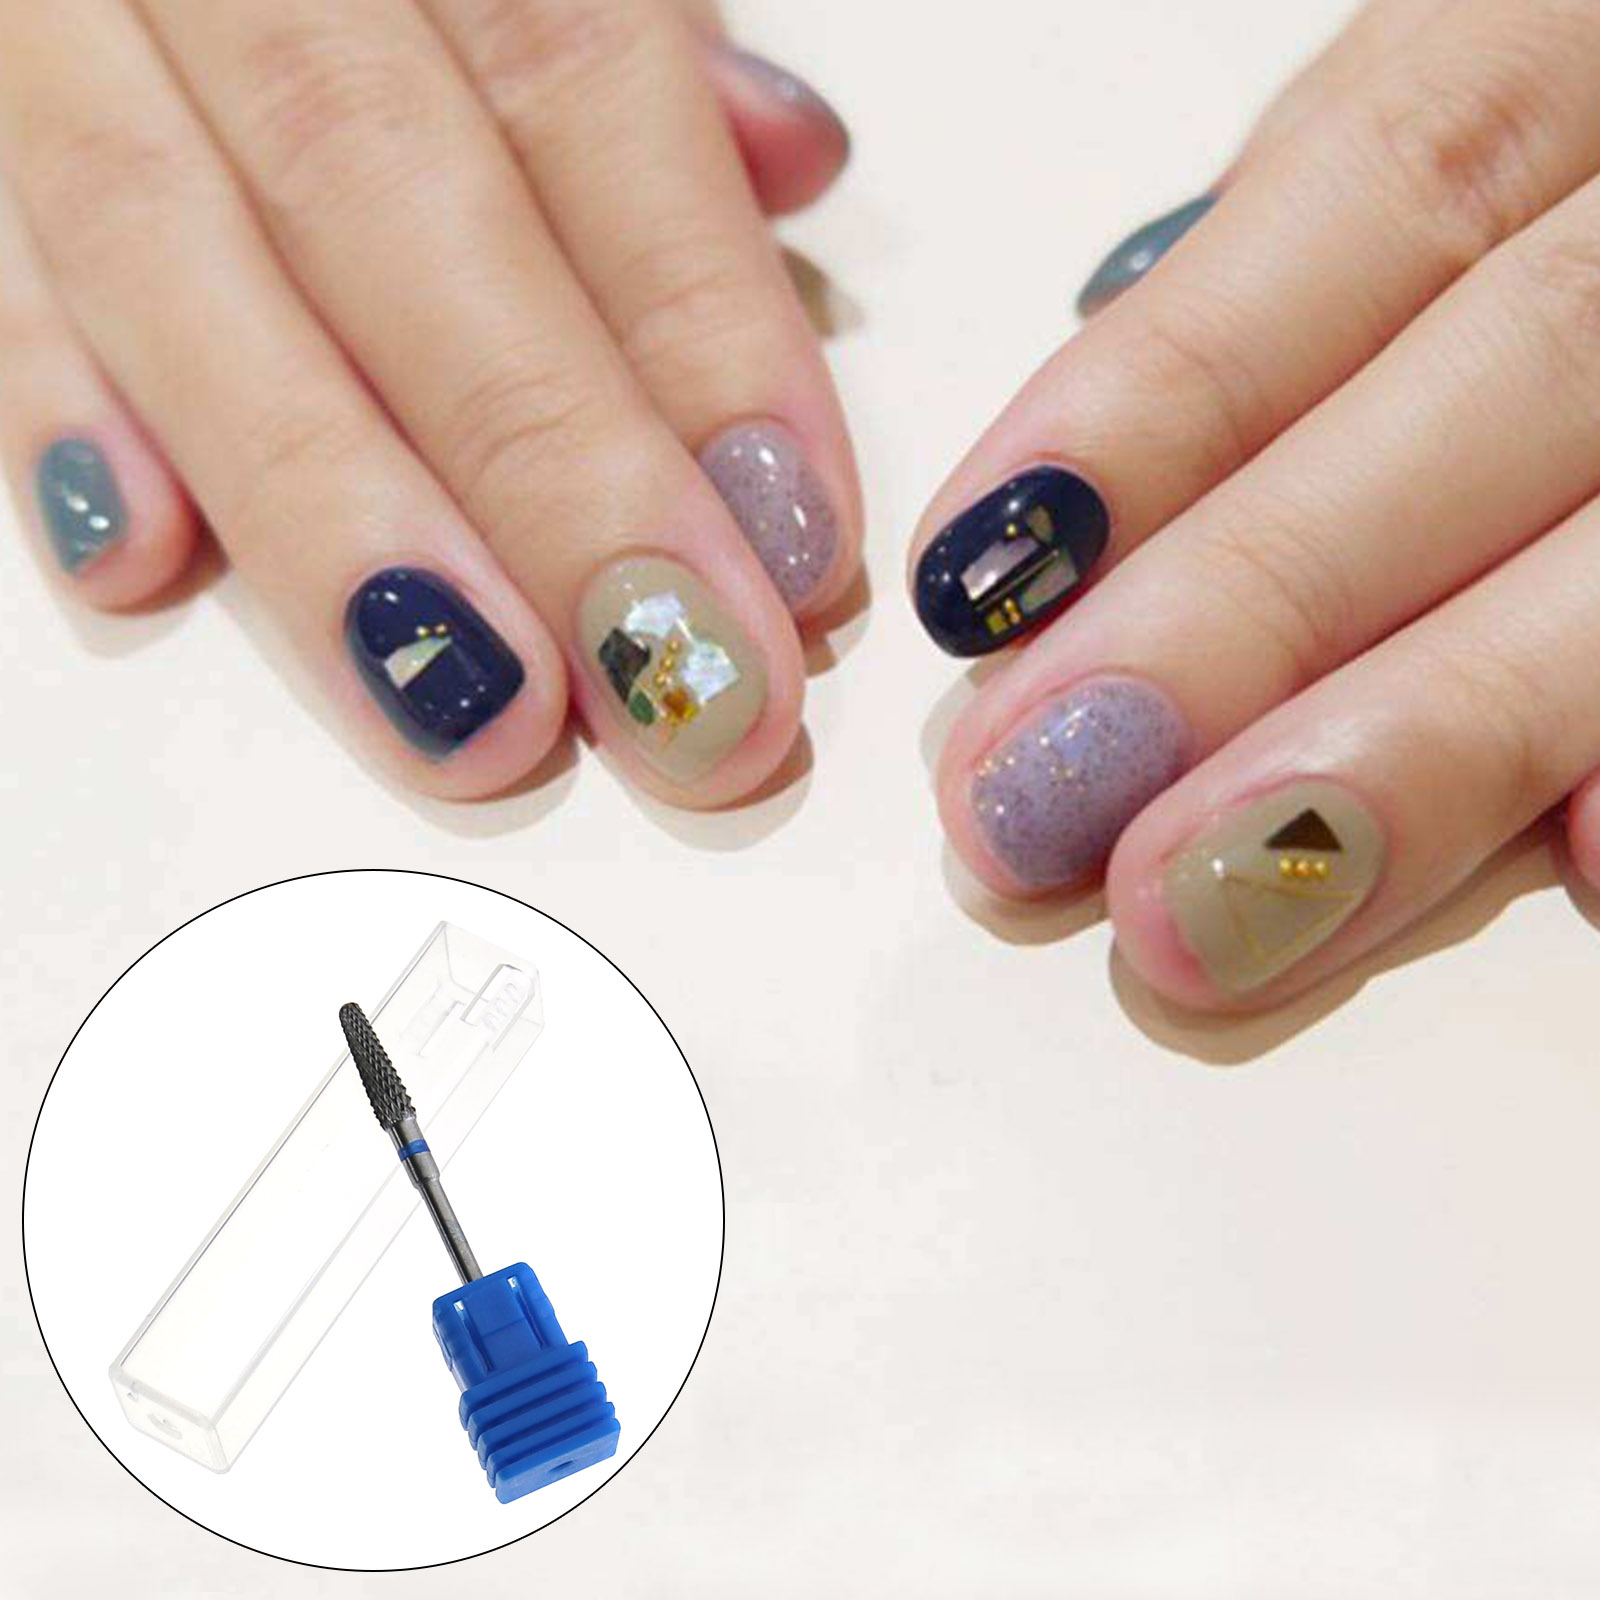 How To Clean Manicure Tools At Home Splendid Wedding Company